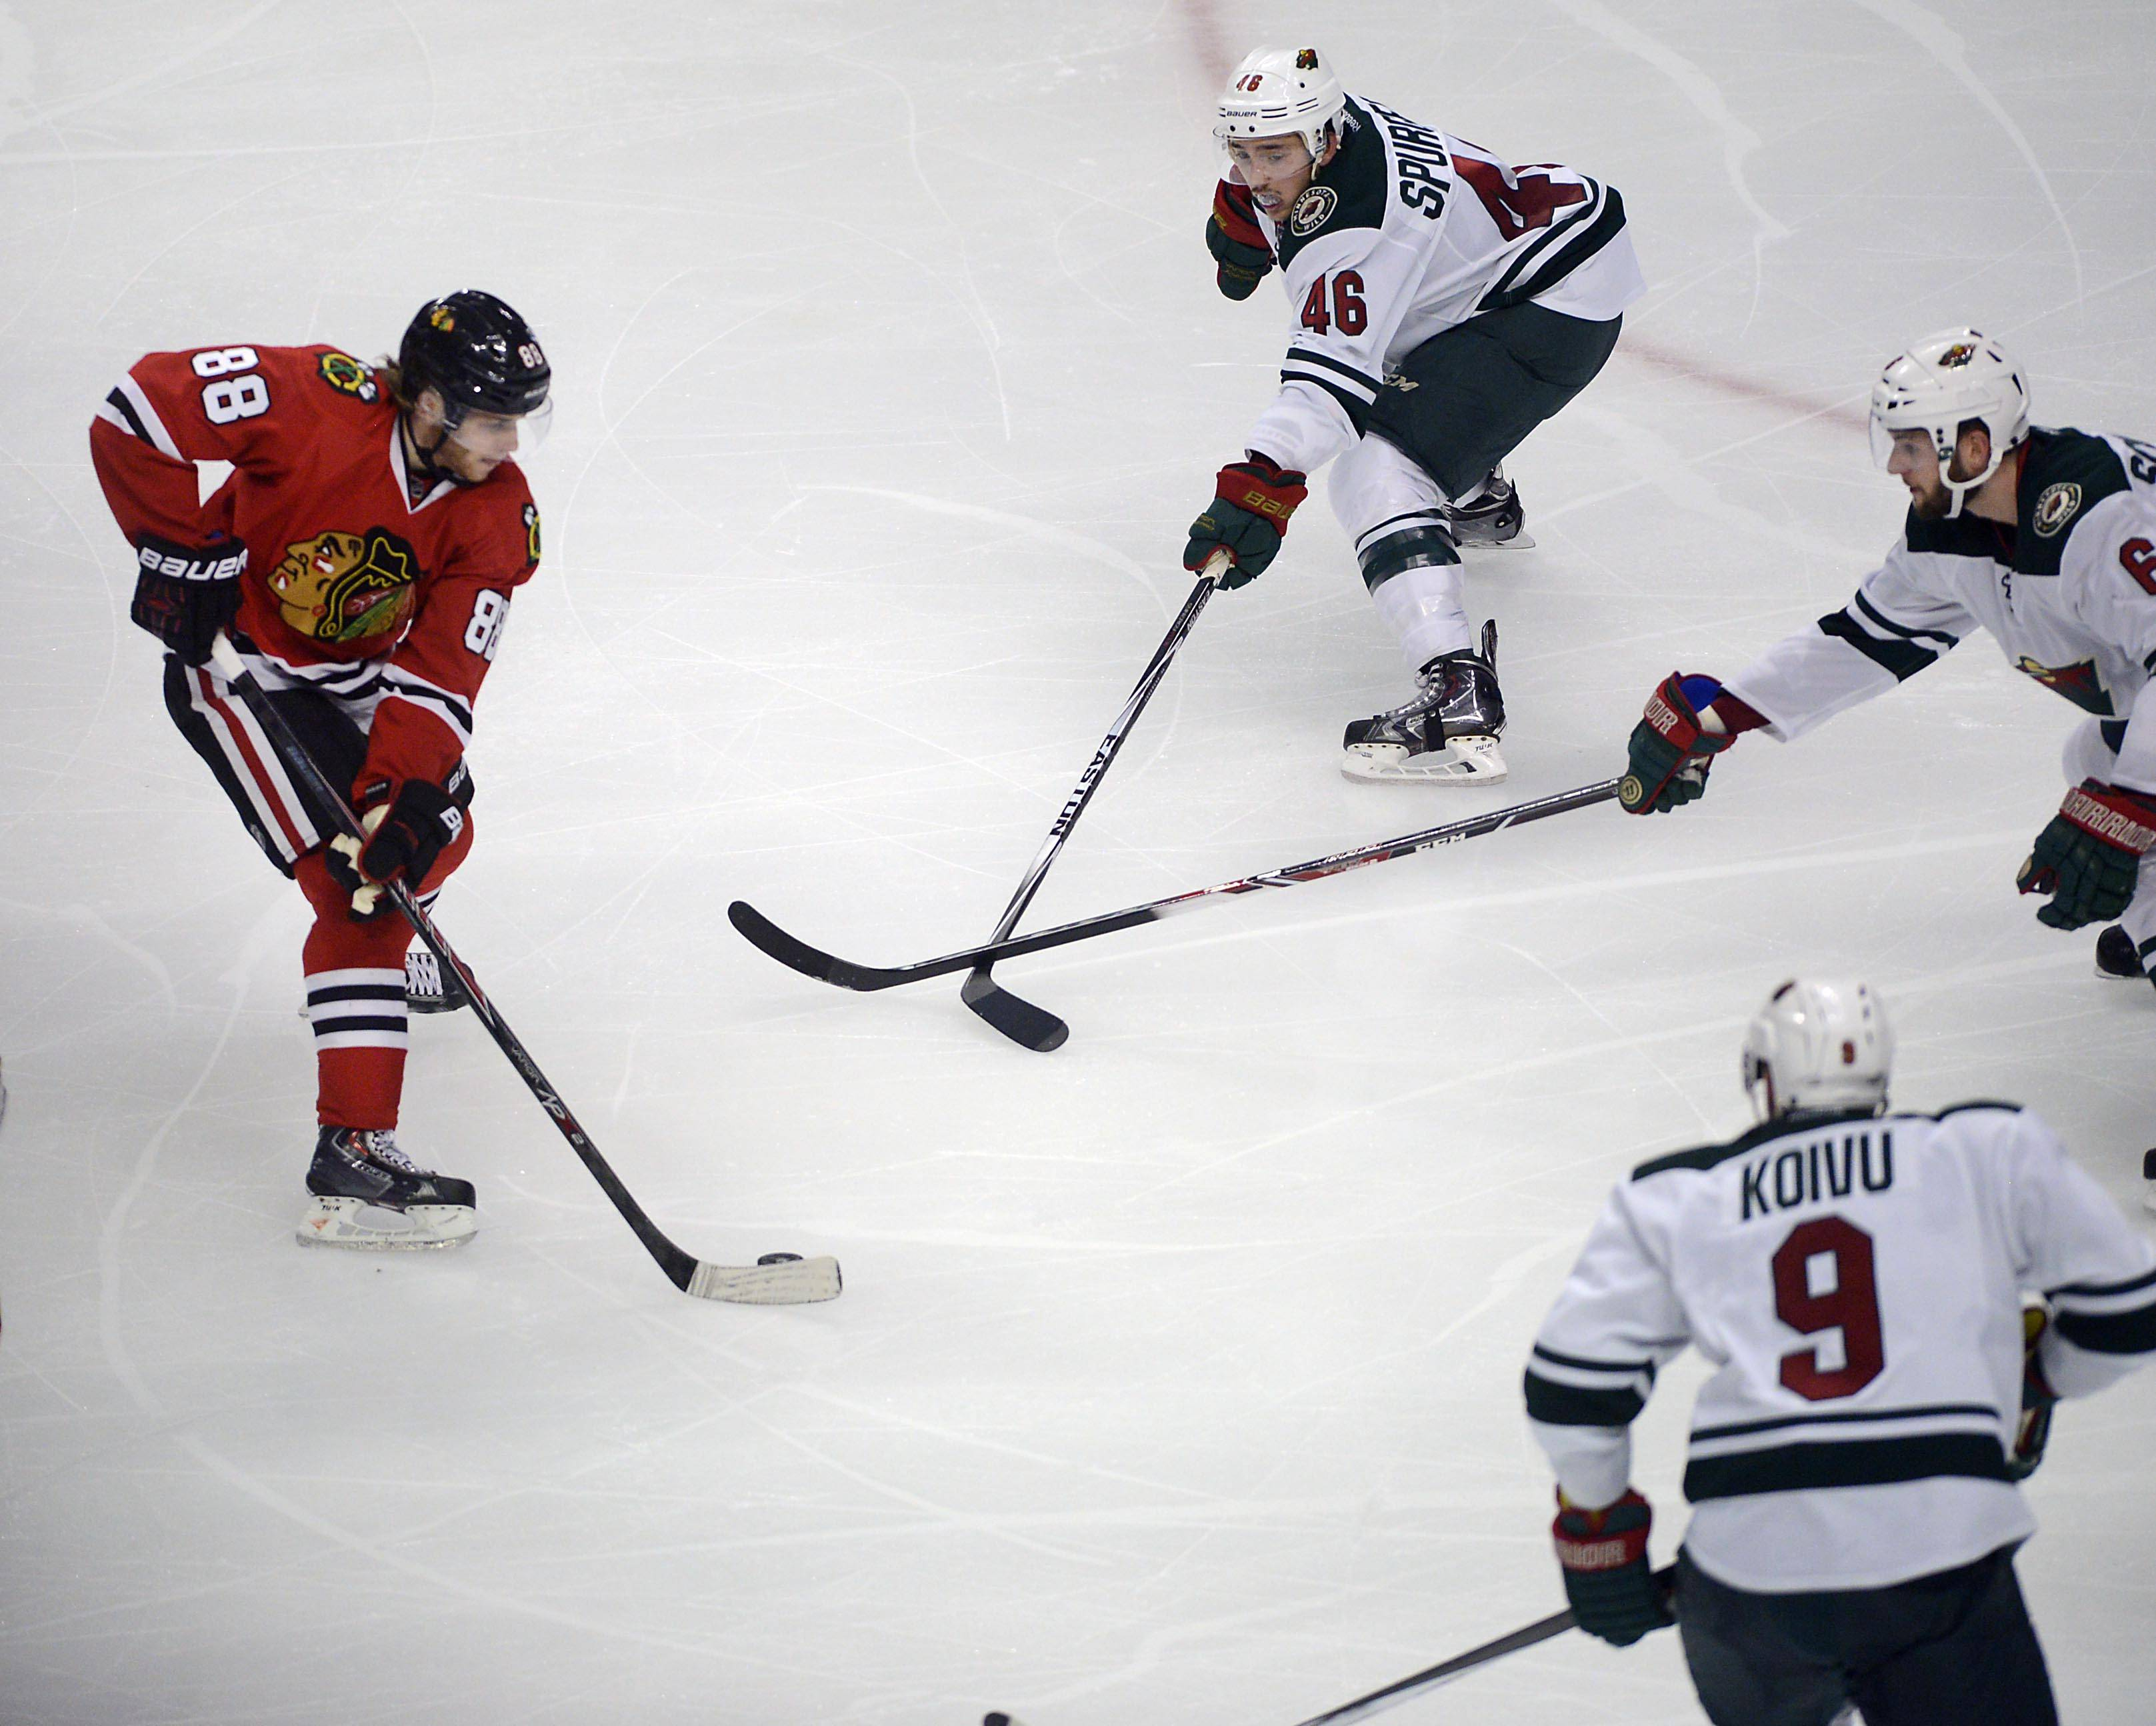 Patrick Kane dazzled Blackhawks fans Friday night with his defender-defying, backhand goal in the third period against the Minnesota Wild.